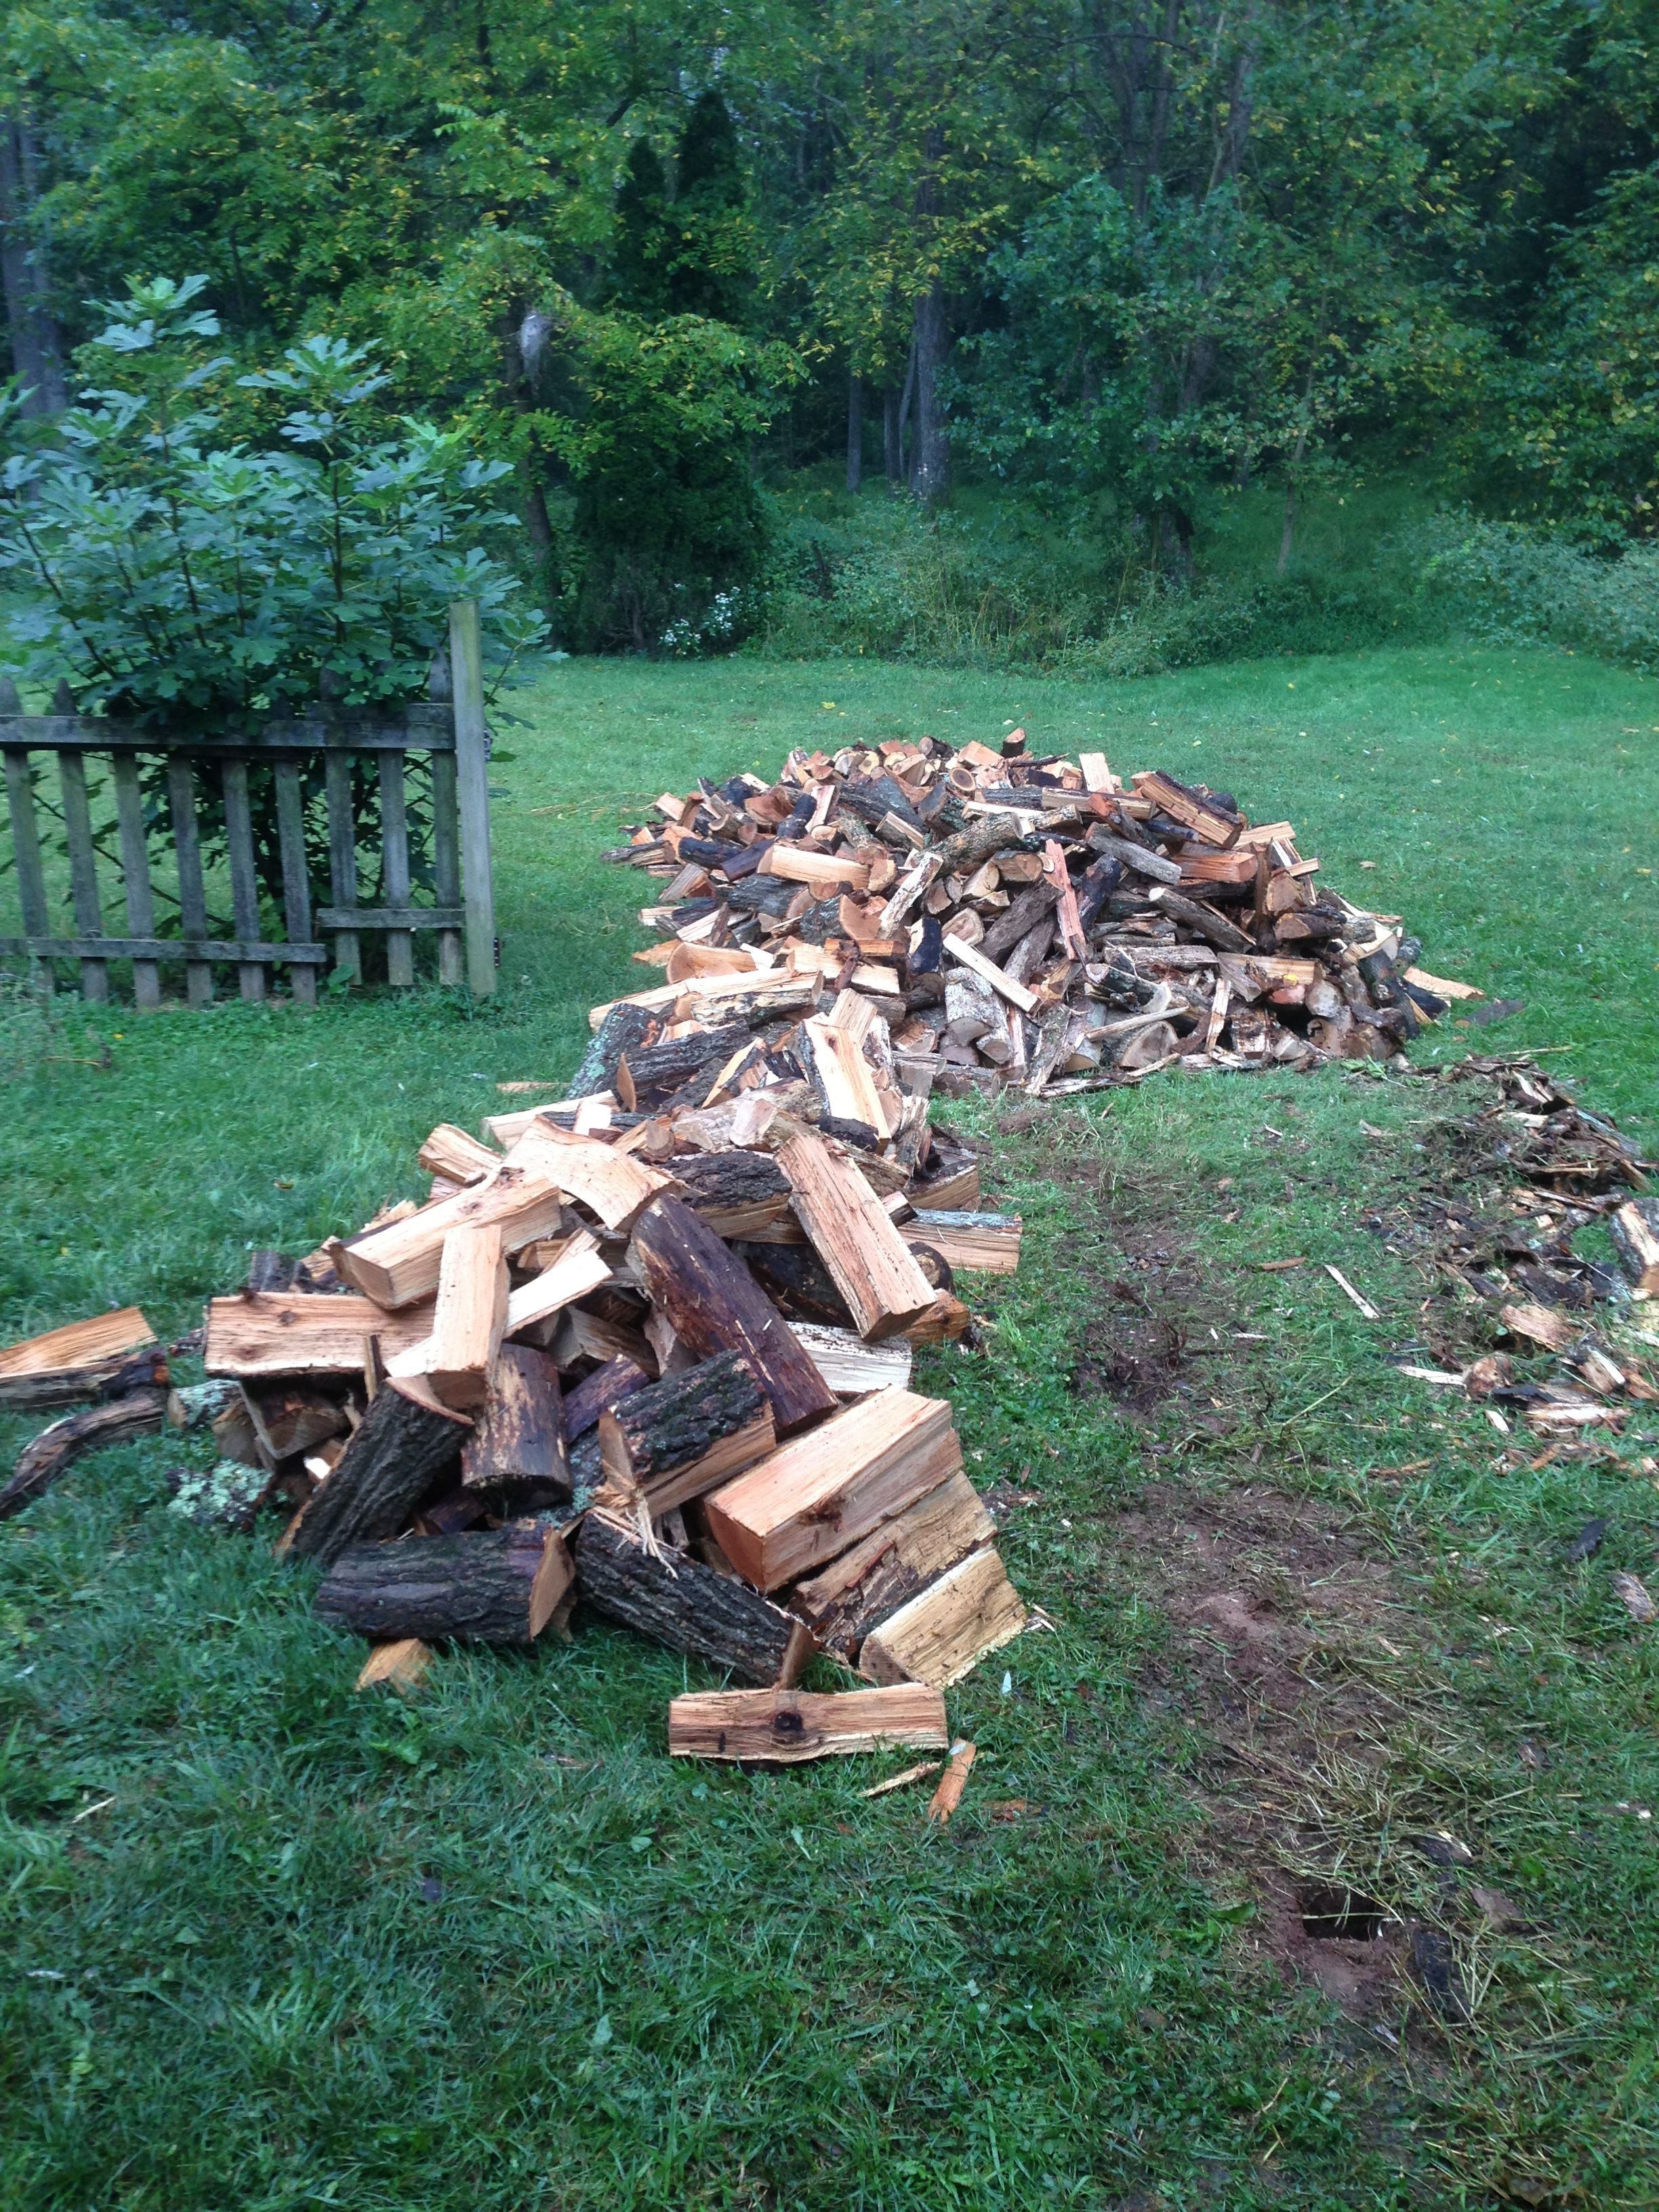 Second day of the winter woodpile project. Now the proposed fence line is exposed; fence goes up in 3 more days.